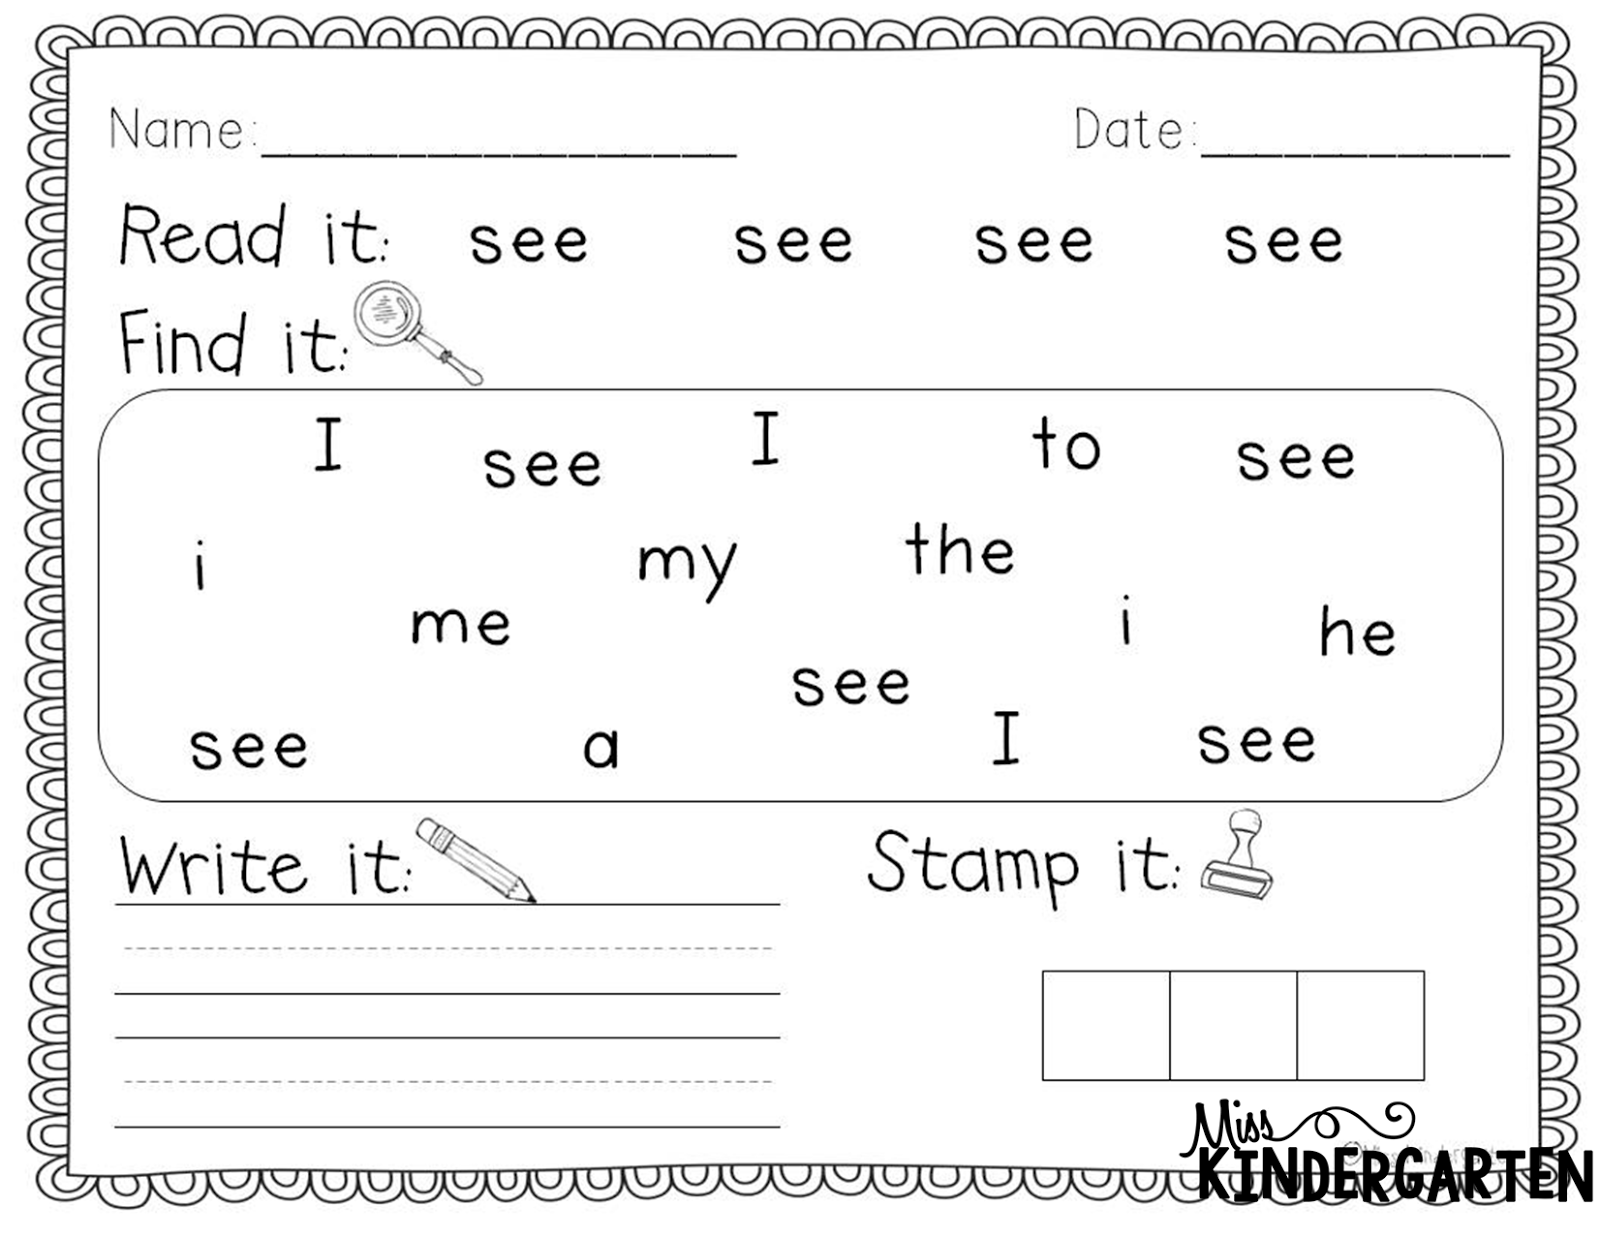 Printables Free Sight Word Worksheets For Kindergarten free printable sight words worksheets davezan for kindergarten davezan